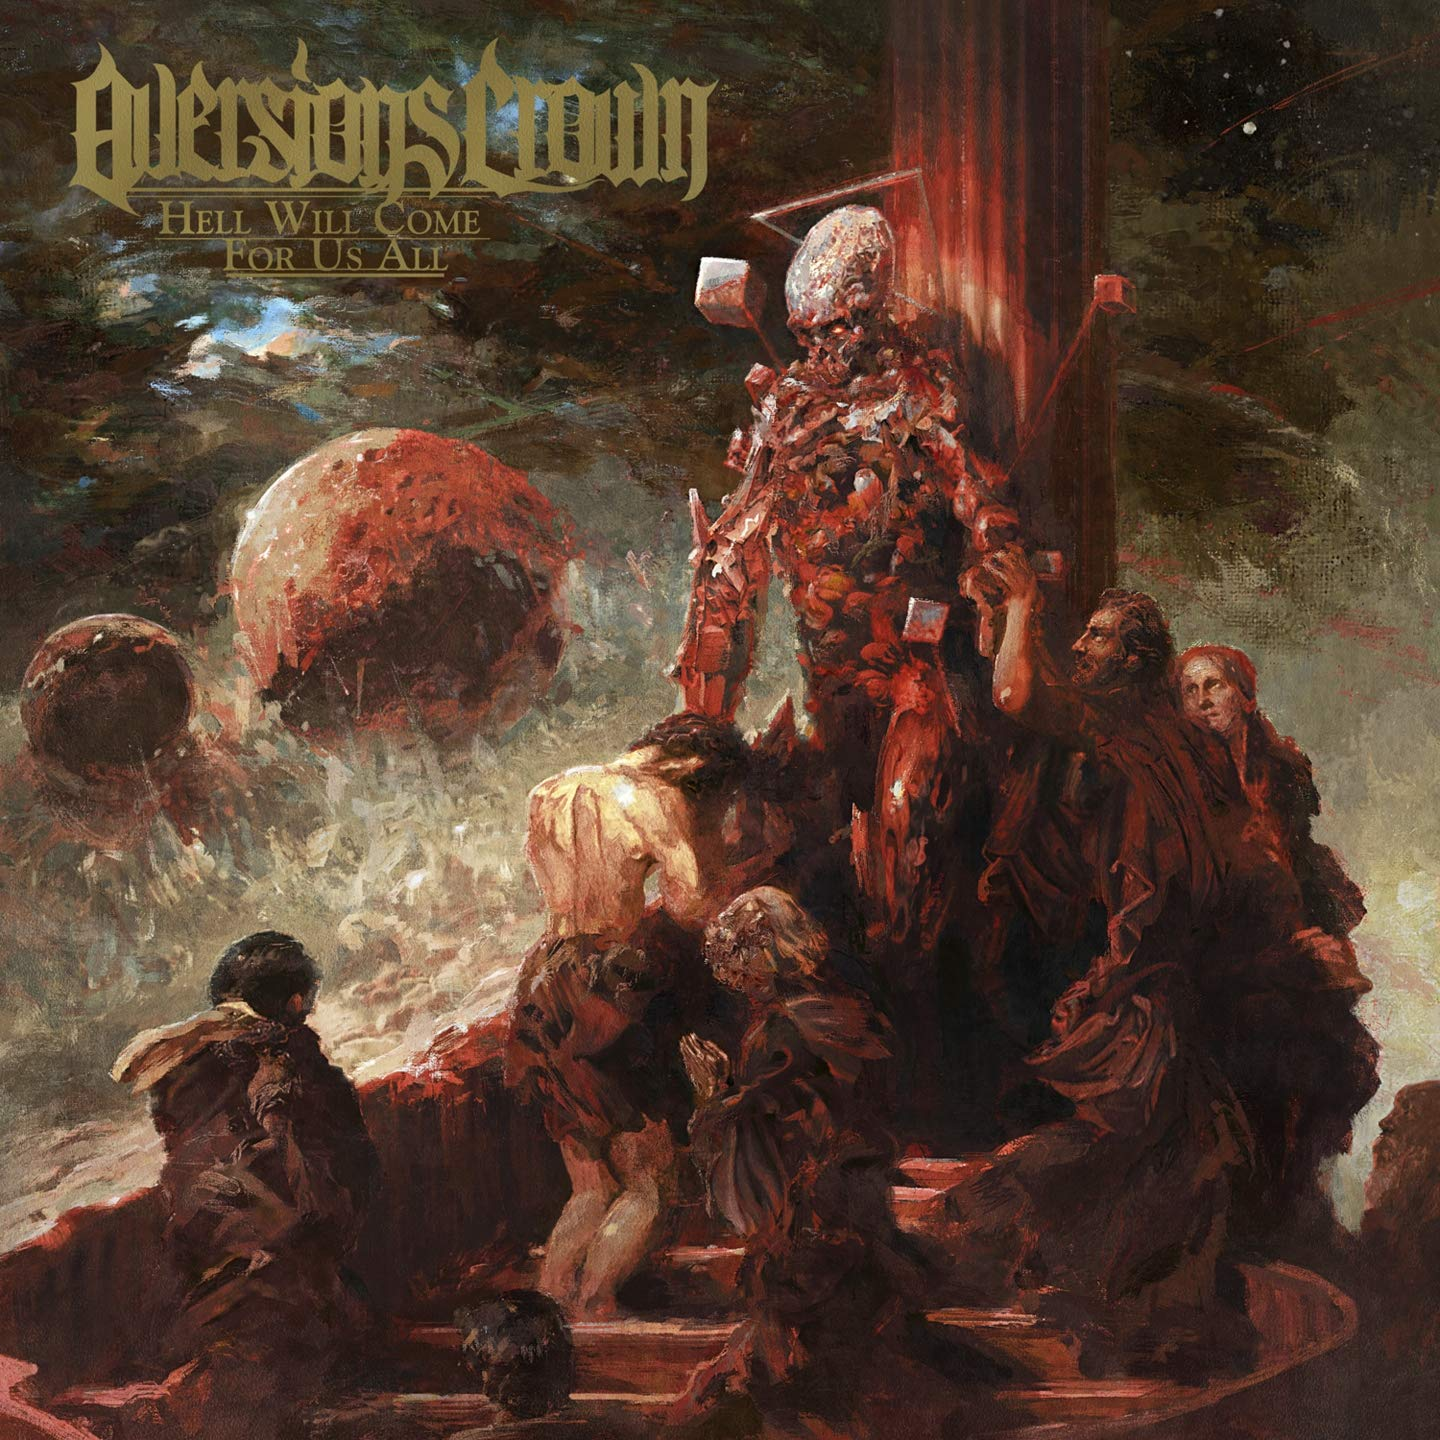 Aversions Crown - Hell Will Come for Us All (2020) [FLAC] Download